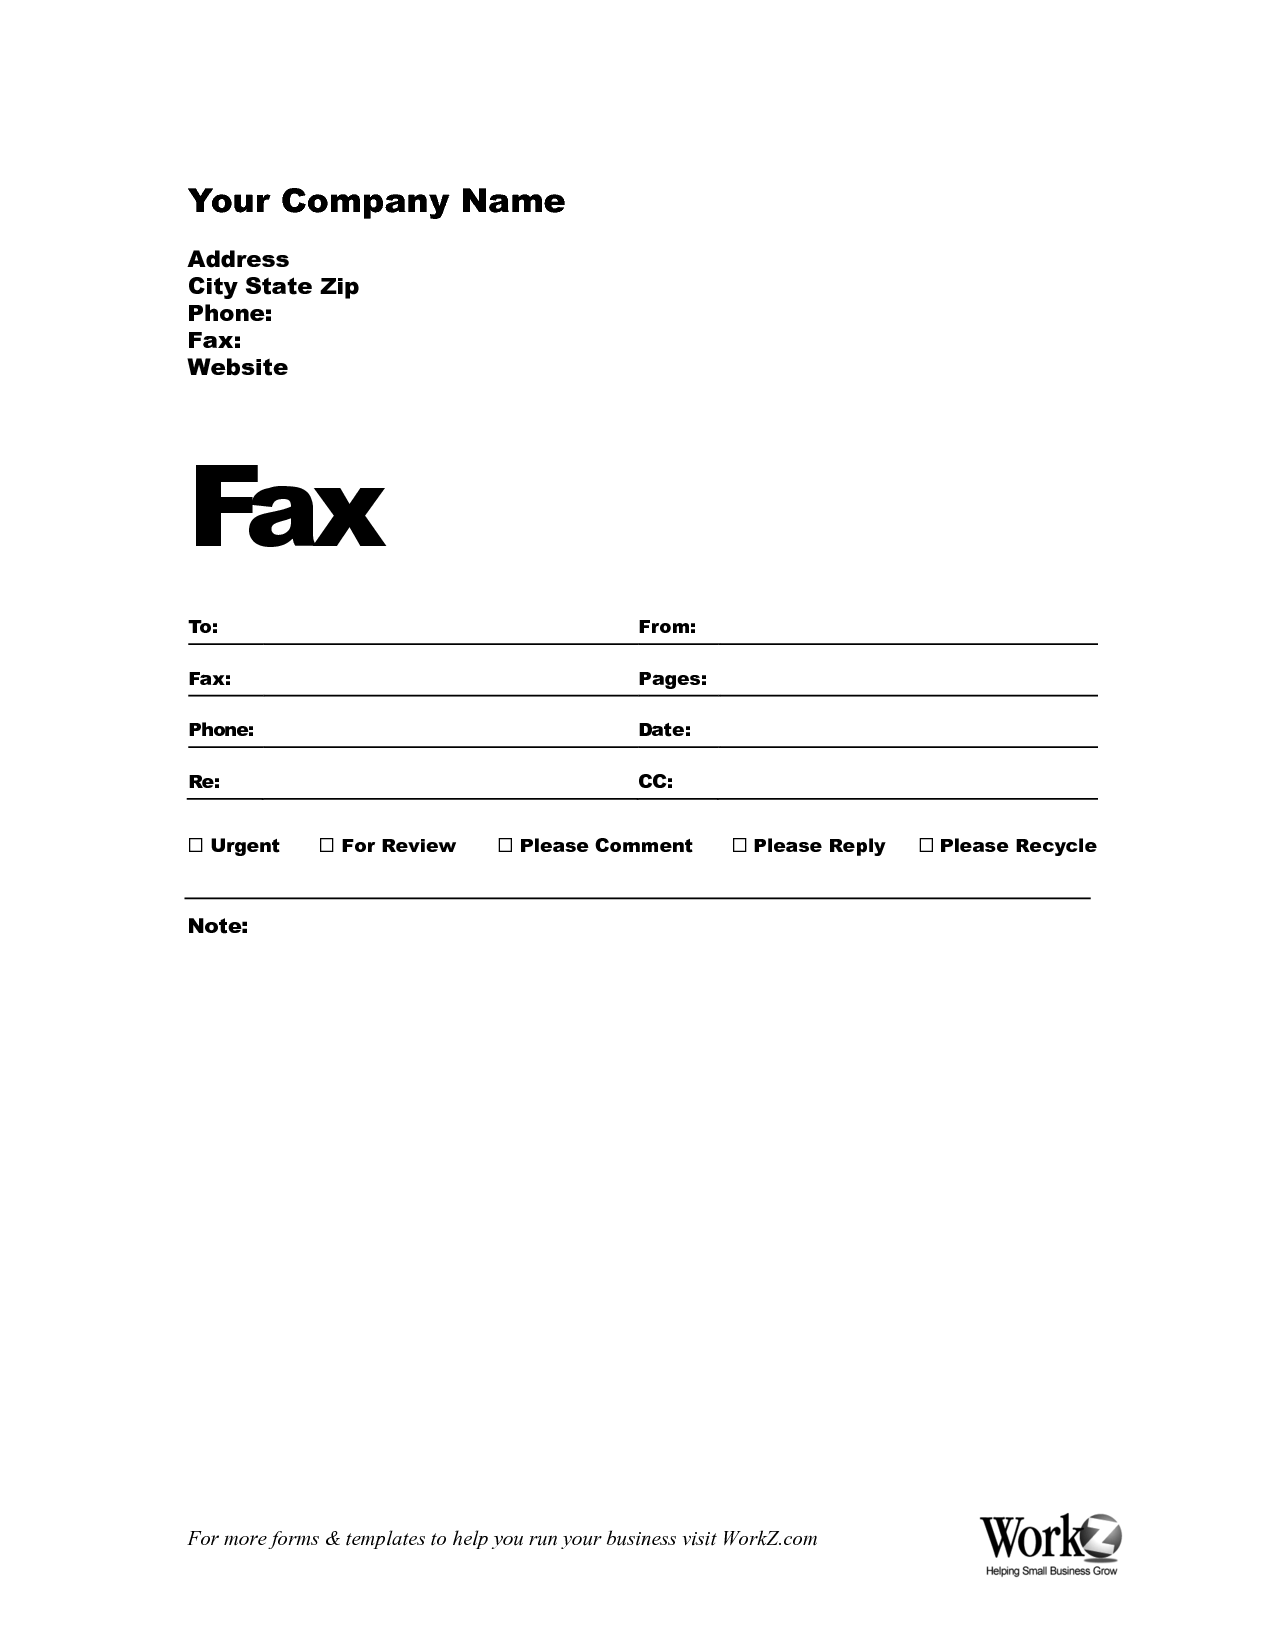 Bfaxb bcoverb bsheetb sample btemplateb images fax word template professional cover sheet free pdf letter resume best free home design idea inspiration pronofoot35fo Gallery